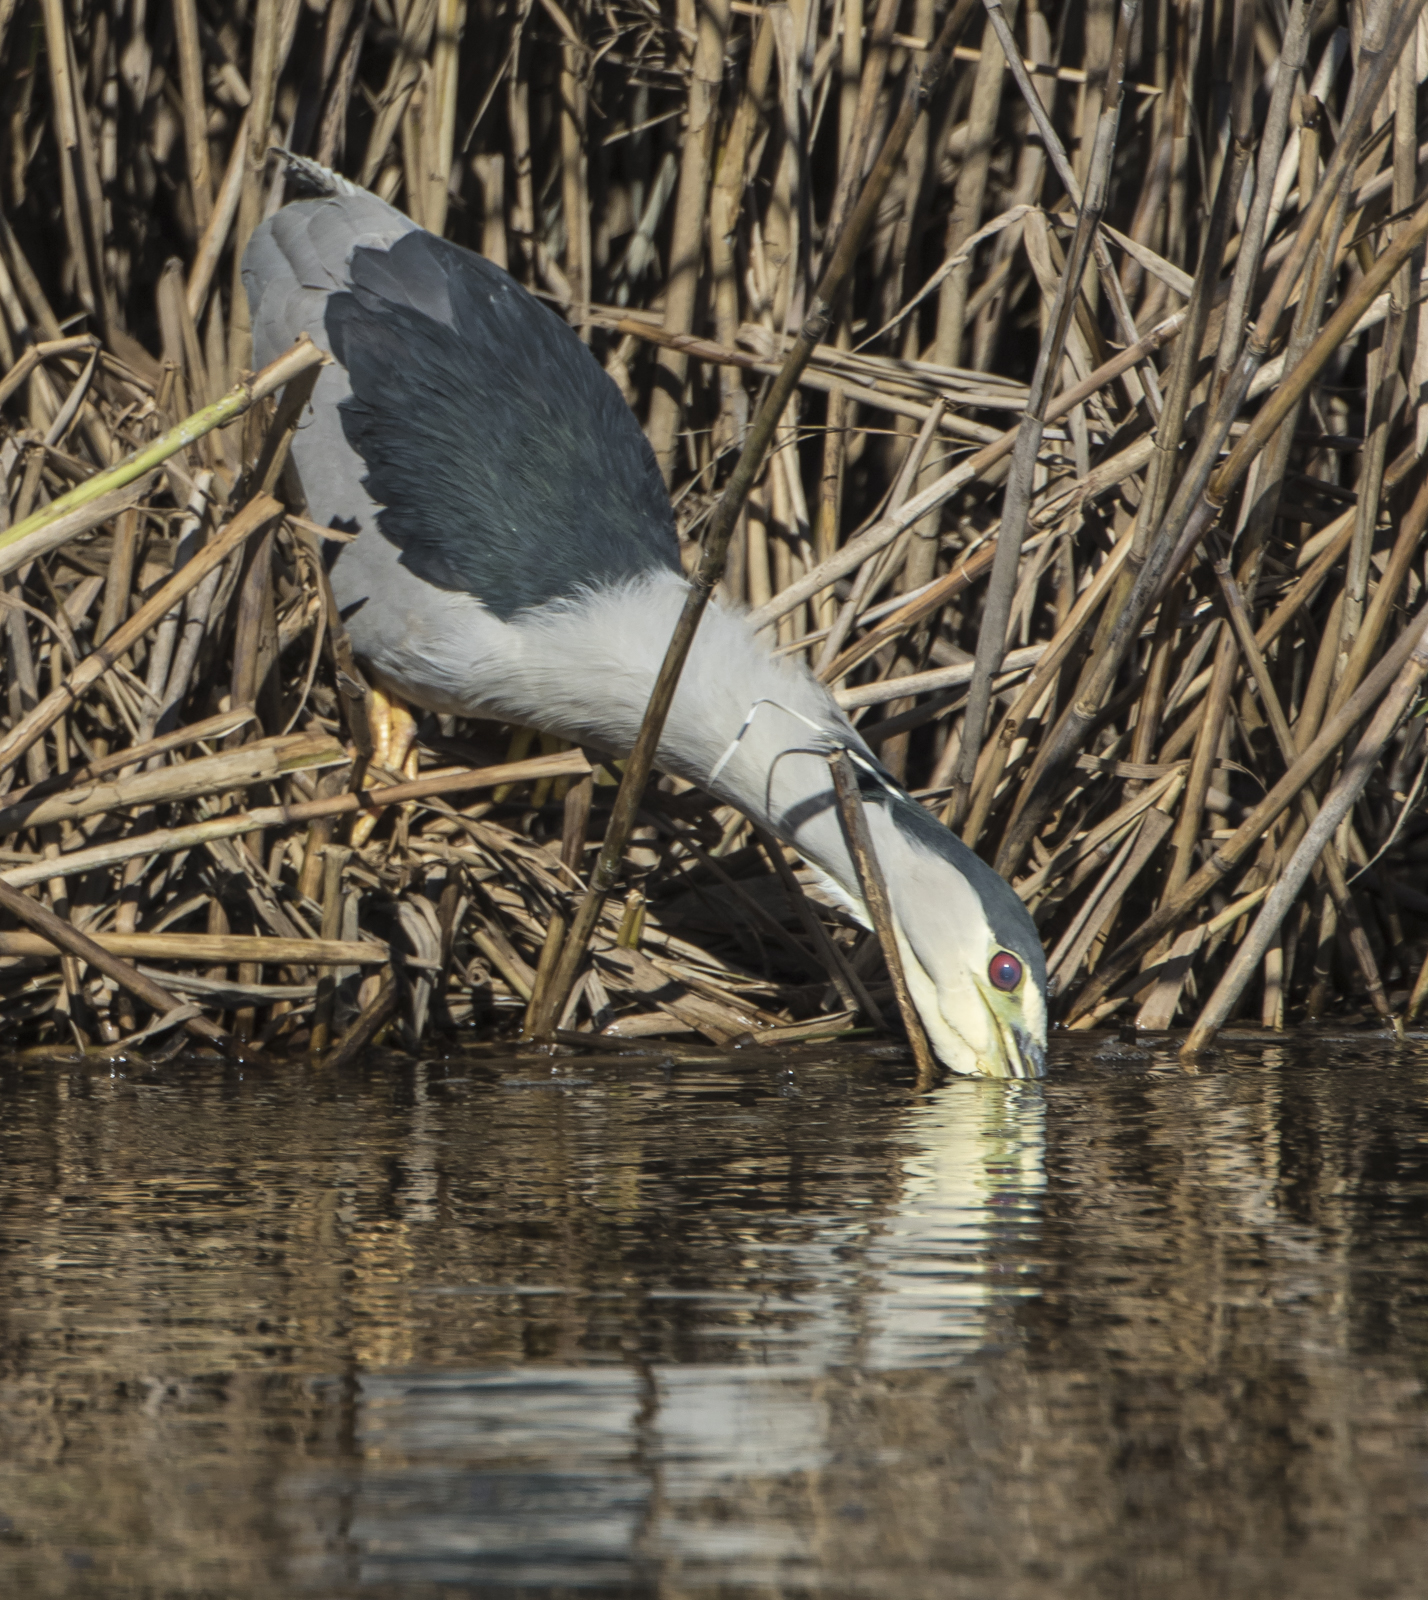 black-crowned night heron strikig at prey